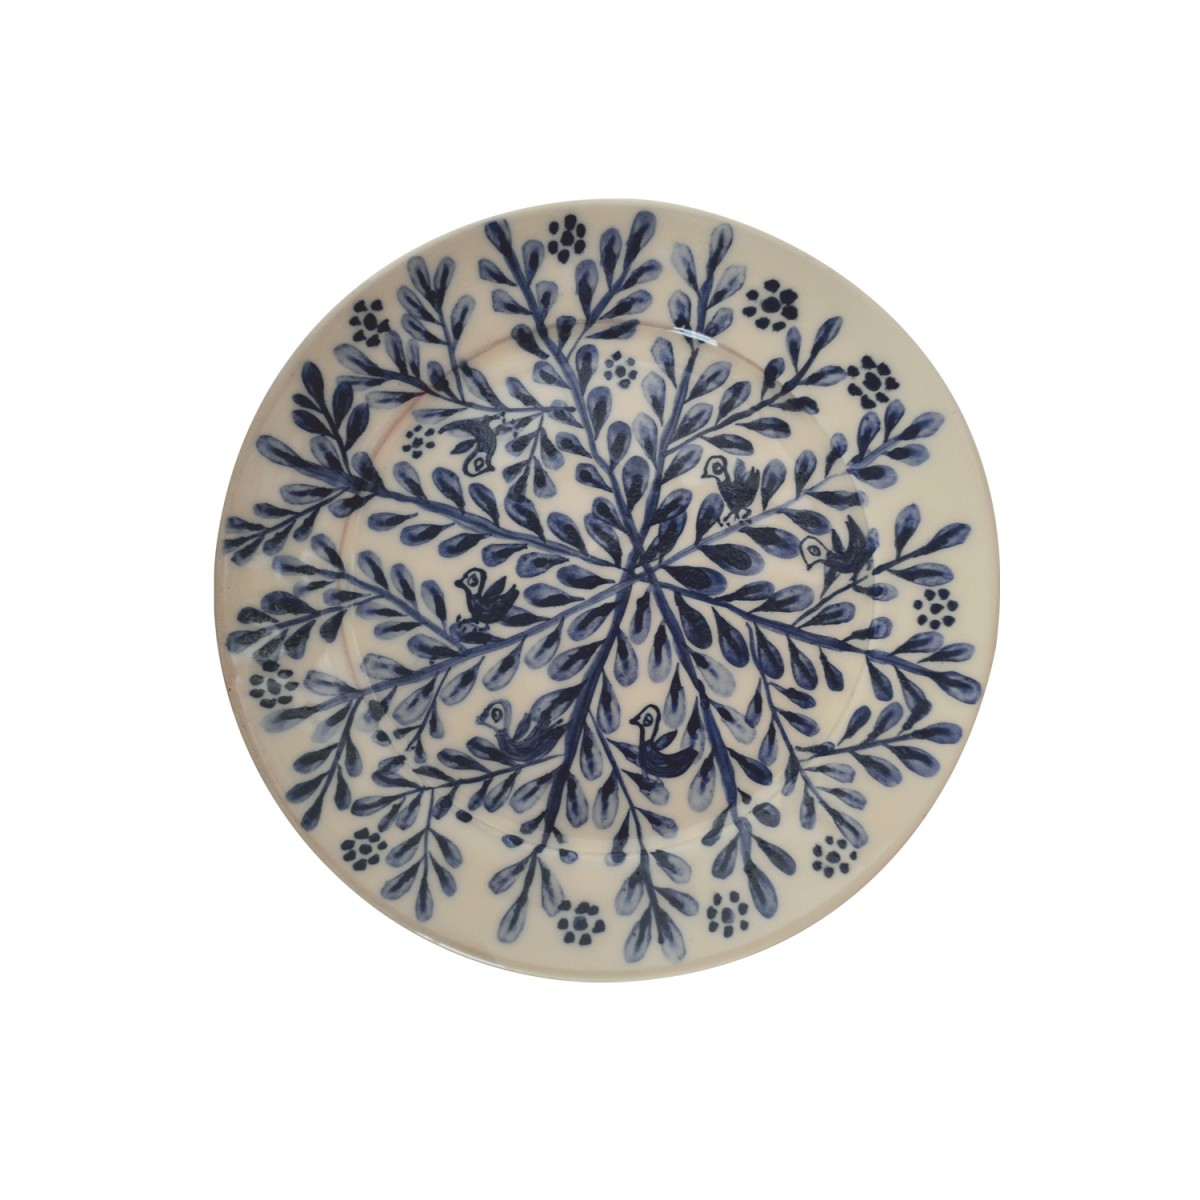 10011-Centered_Branches_Hand-made_Ceramic_Plate-1